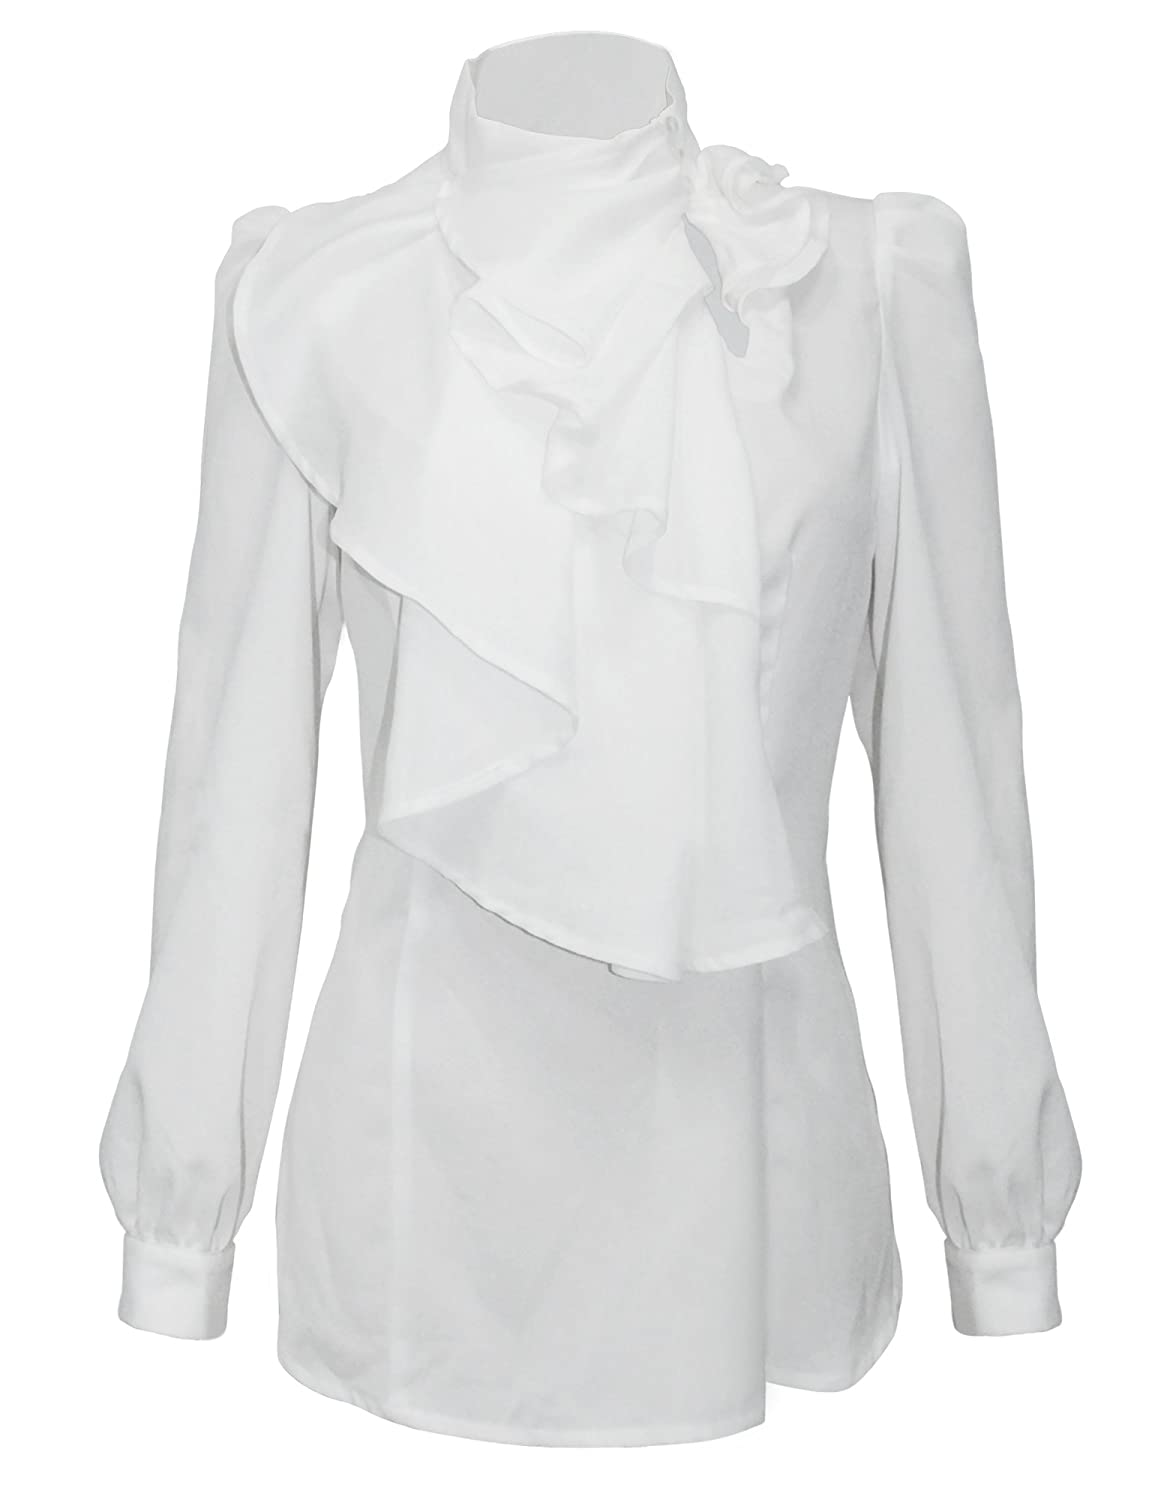 Edwardian Blouses | White & Black Lace Blouses & Sweaters Vintage Ruffle Long Sleeve Shirt Blouse Tops $24.99 AT vintagedancer.com